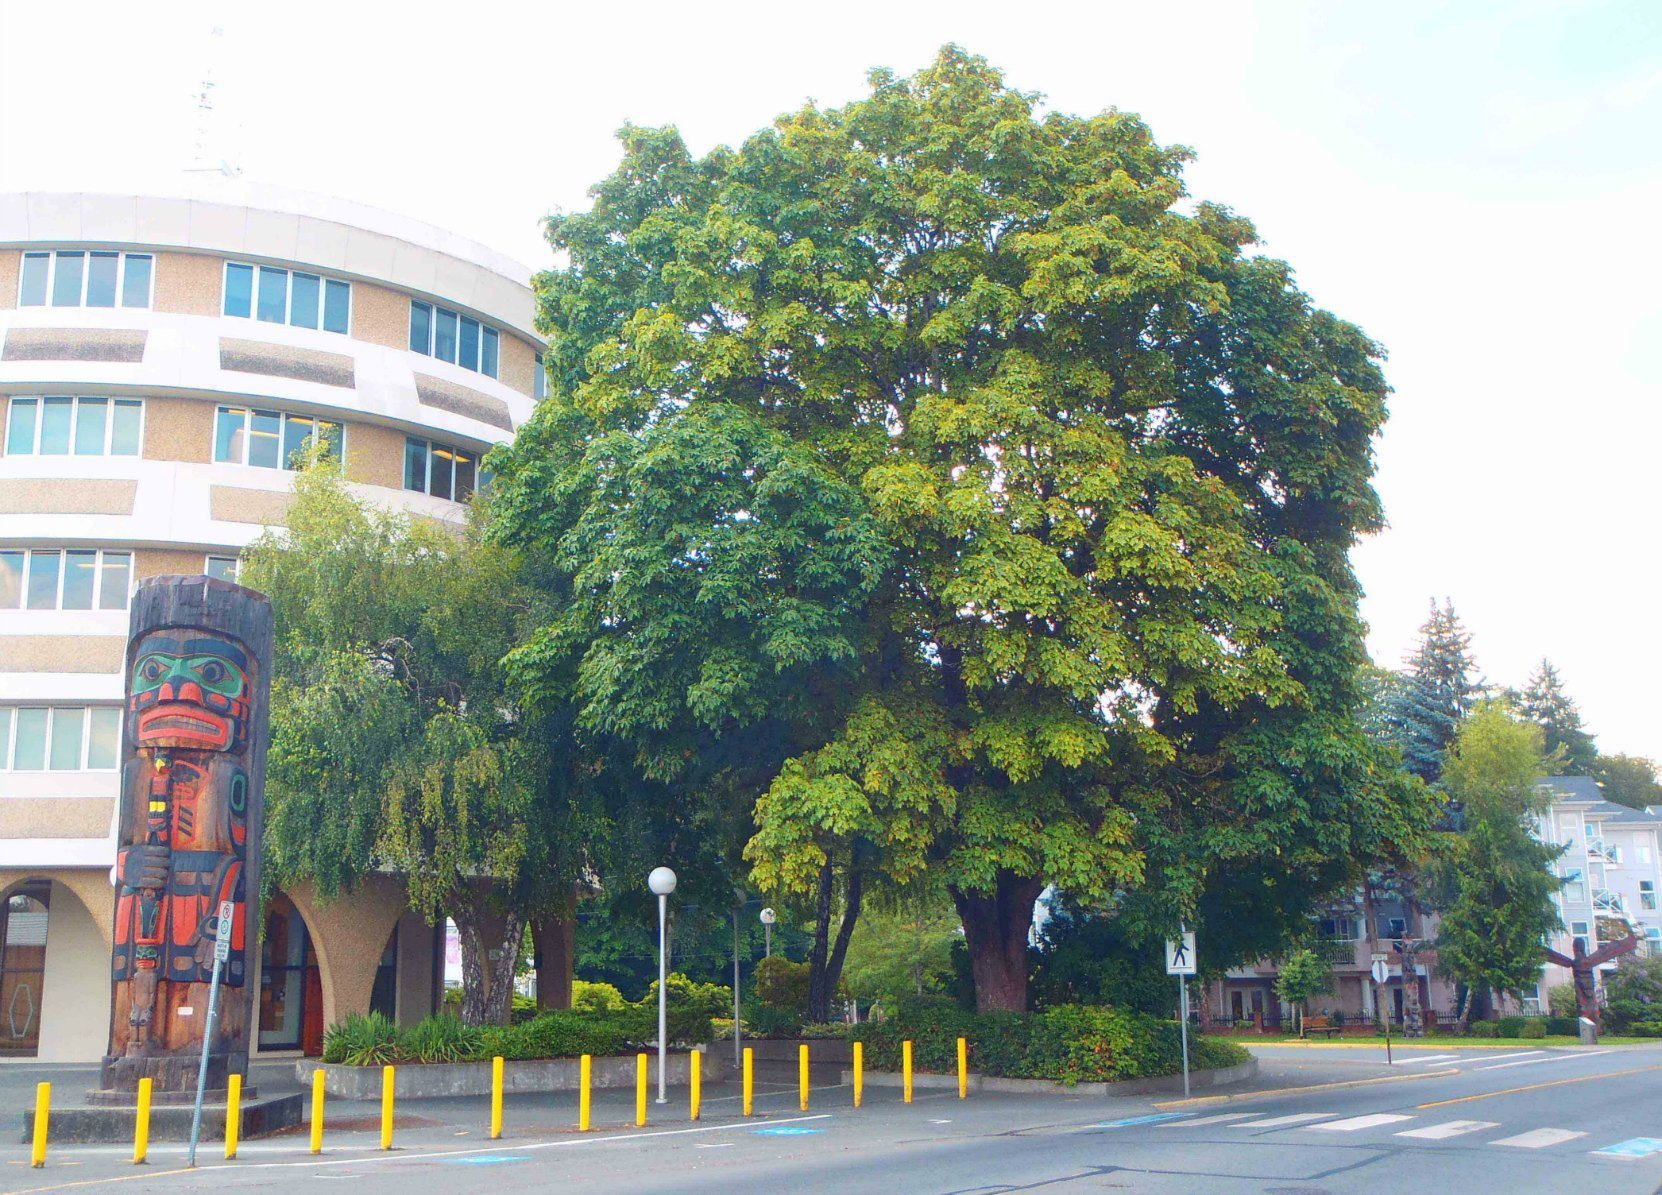 Confederation Tree, Government Street, Duncan, B.C. Planted 1 July 1927 by David Alexander